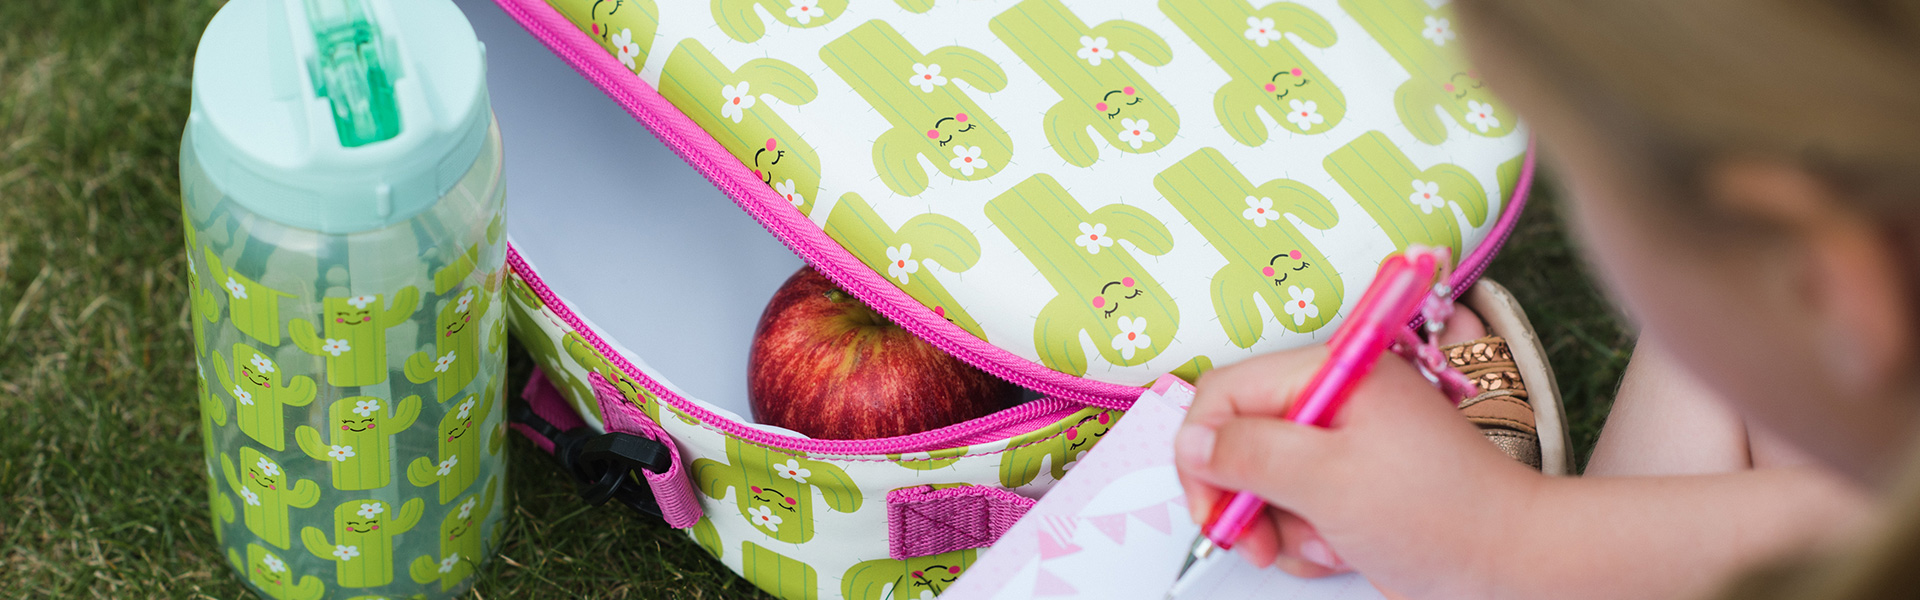 These Cute Lunch Bags Are All the Motivation we Need to Bring a Packed Lunch